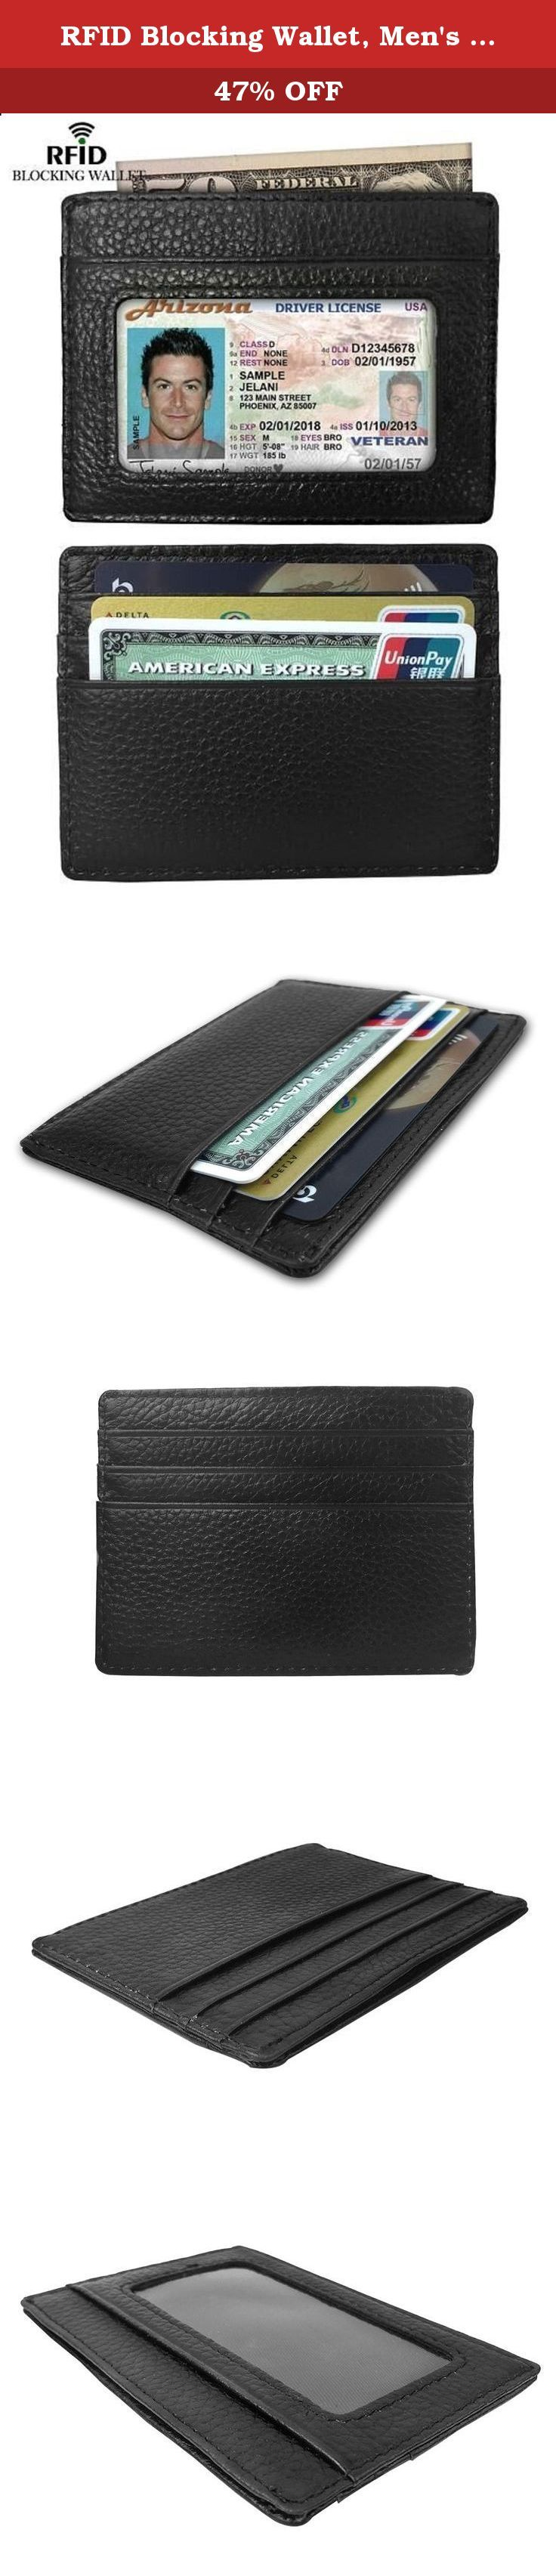 RFID Blocking Wallet, Men's Genuine Leather RFID Blocking Leather Slim Minimalist Money Clip Front Pocket Wallet, Card Holder. What is RFID? RFID: Radio Frequency Identification Denoting technologies that use radio waves to identify people and objects carrying encoded chips. These can include credit card information, passport identification or other forms of ID as well as access cards etc. Why do I choose RFID blocking wallet? With all the concerns about identity theft today and with the...